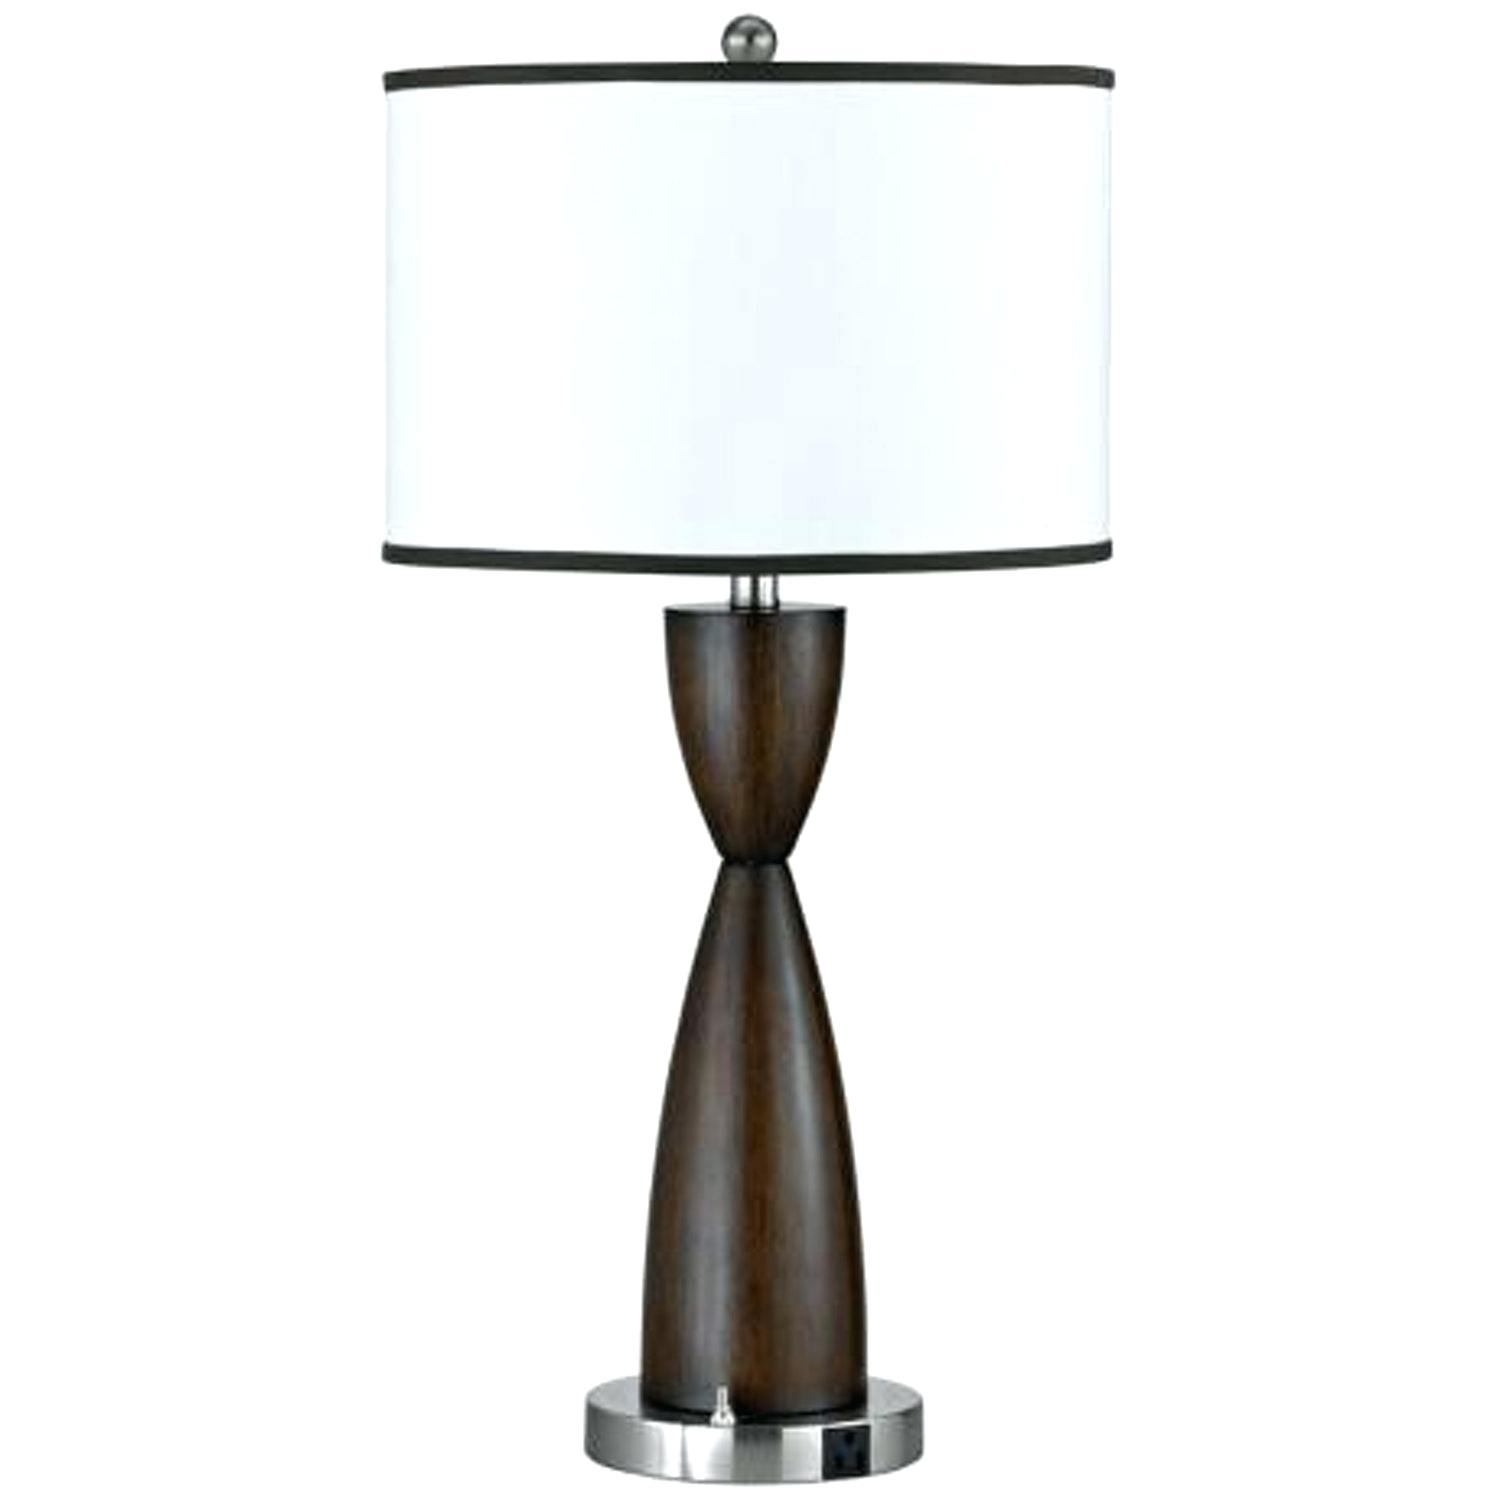 lamp table parts lamps with usb ports buffet nice hotel design best desk port nightstand just arrived rely light aurora amber emergency contemporary plugs the base drafting